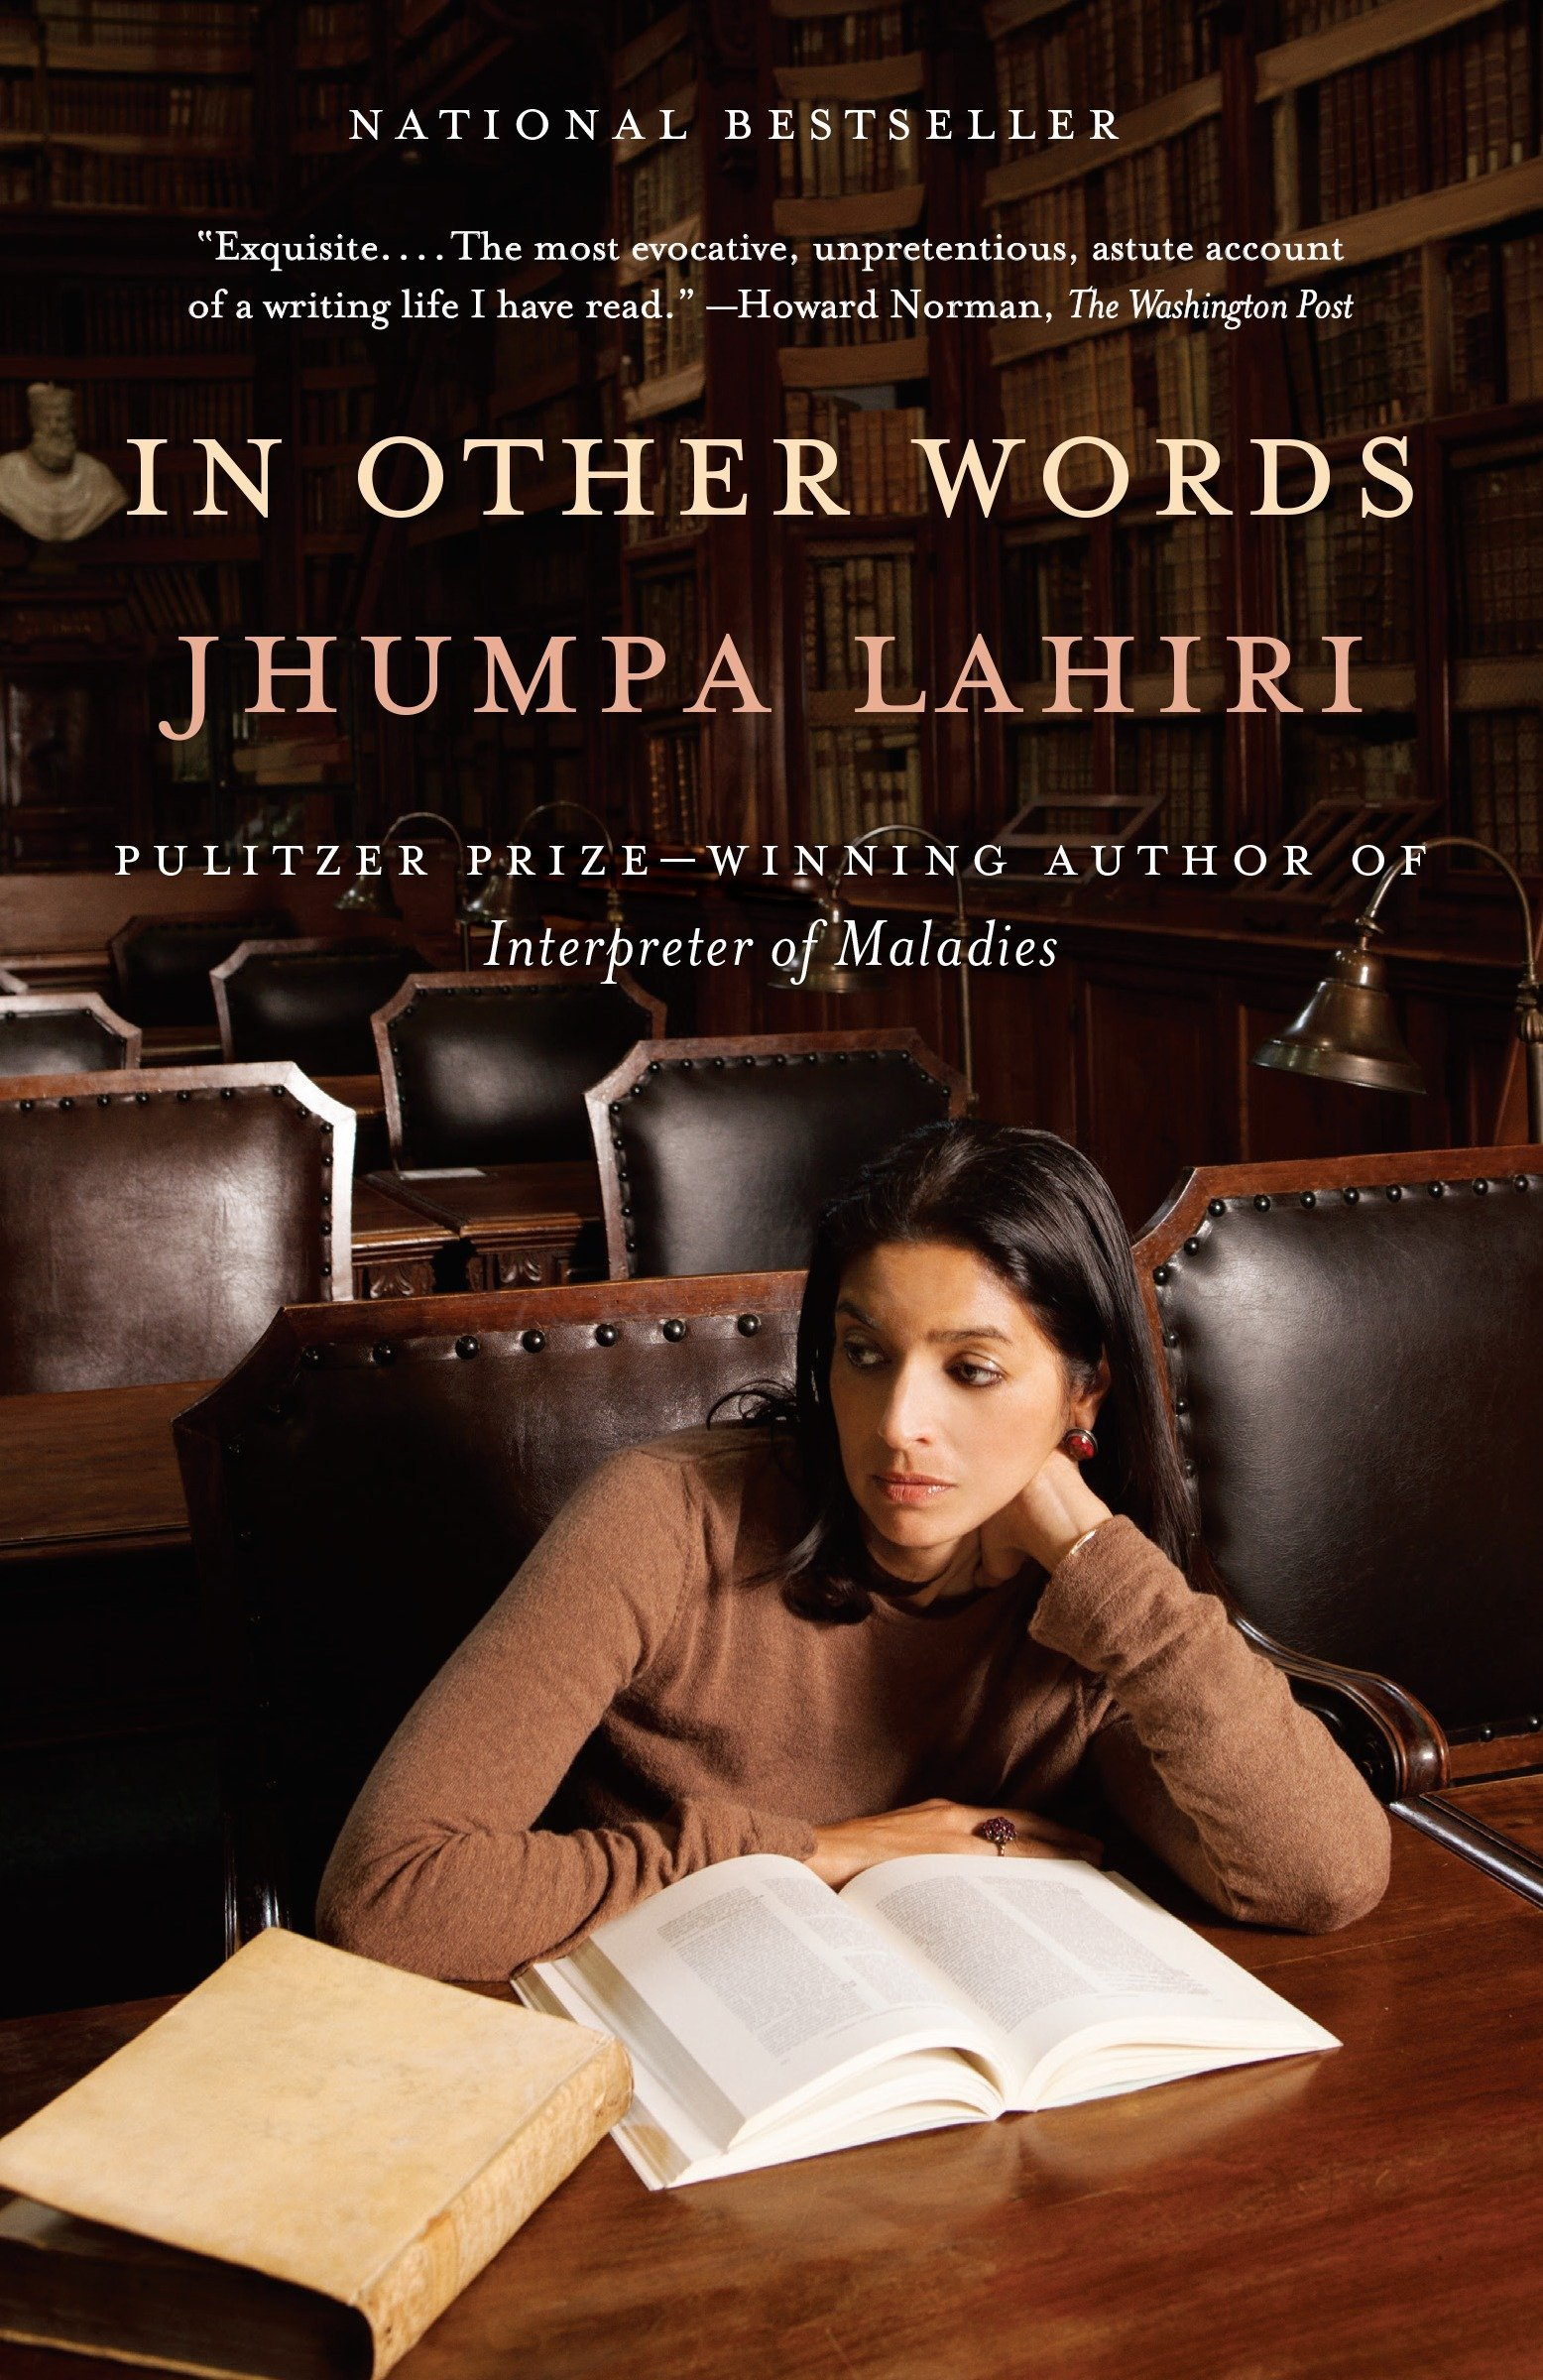 "IN OTHE WORDS - BY JHUMPA LAHIRI - Presented in a dual-language format : English and Italian.In Other Words is at heart a love story—of a long and sometimes difficult courtship, and a passion that verges on obsession: that of a writer for another language. For Jhumpa Lahiri, that love was for Italian, which first captivated and capsized her during a trip to Florence after college.And although Lahiri studied Italian for many years afterward, true mastery had always eluded her. So in 2012, seeking full immersion, she decided to move to Rome with her family, for ""a trial by fire, a sort of baptism"" into a new language and world .In Rome, Lahiri began to read, and to write—initially in her journal—solely in Italian. In Other Words, investigates the process of learning to express oneself in another language, and describes the journey of a writer seeking a new voice.Suggested for: Beginners, Elementary, Intermediate and Advanced Italian students."